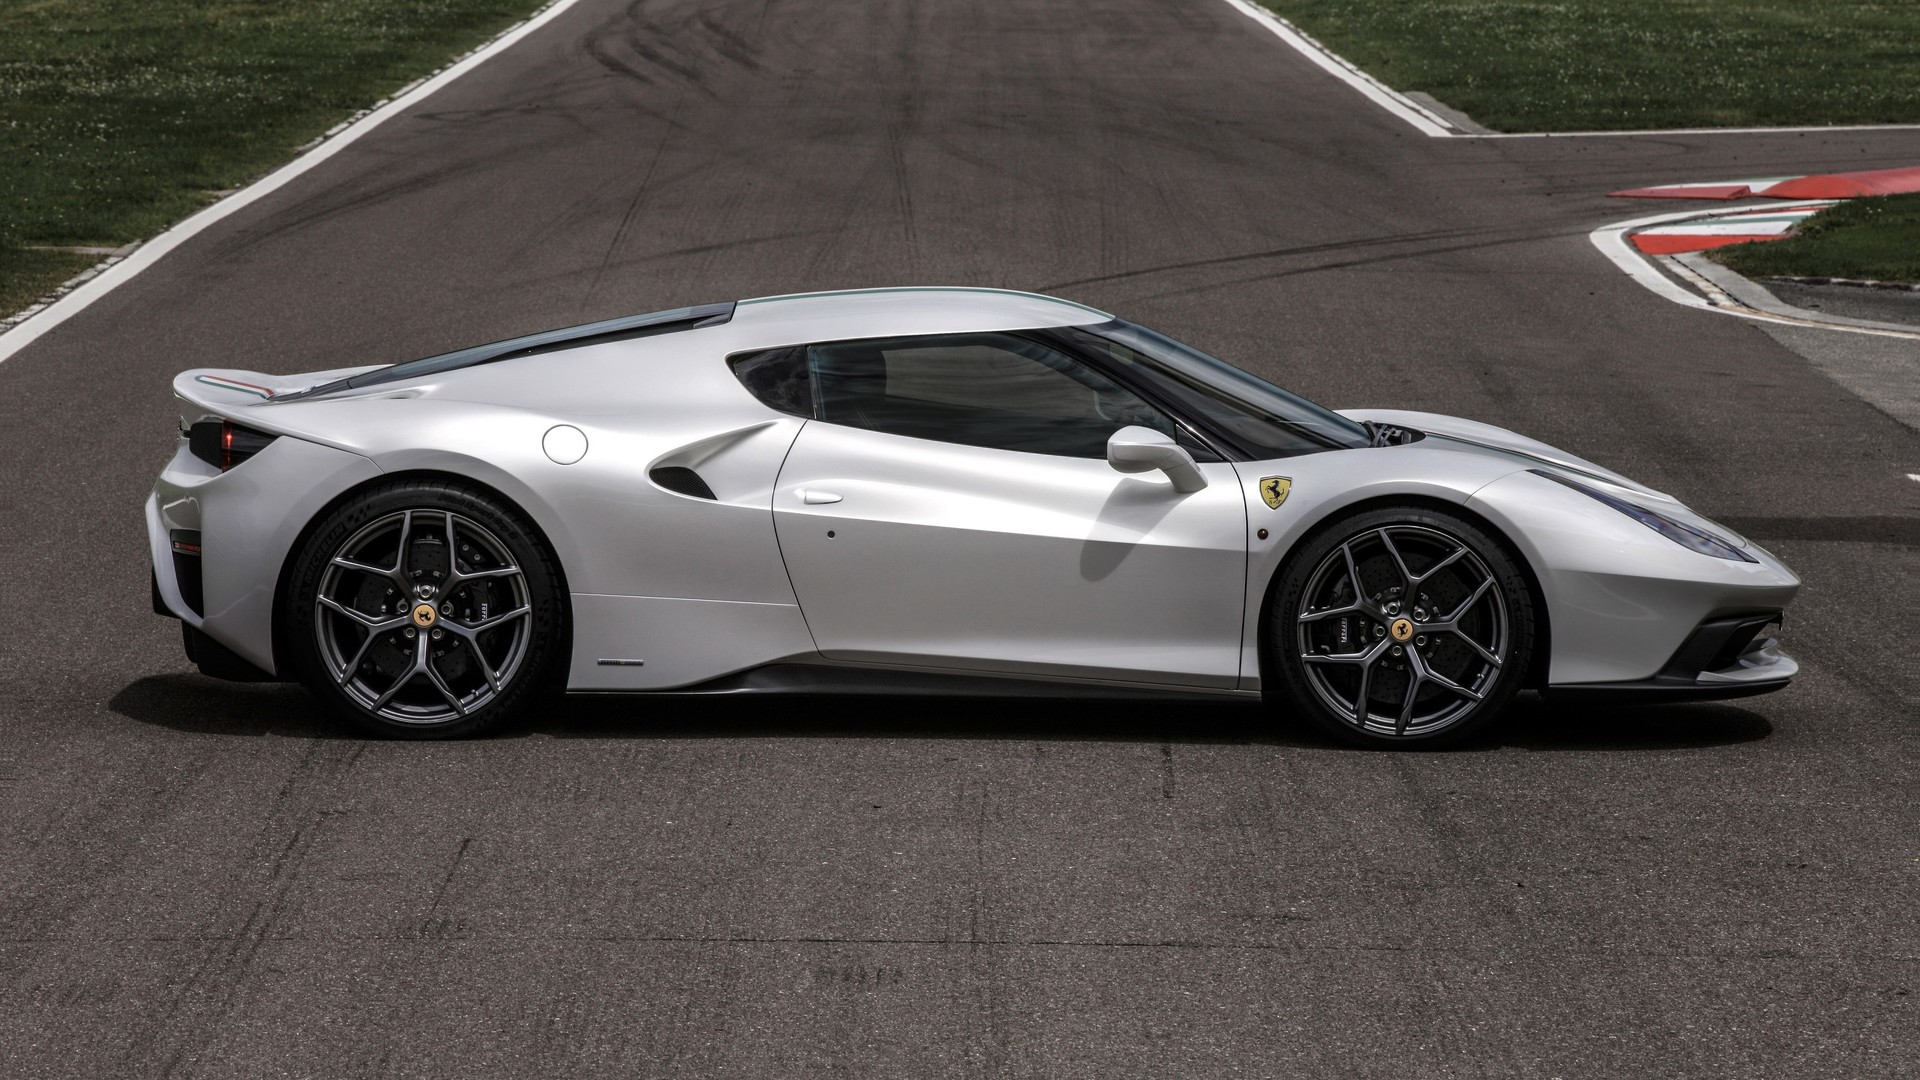 Ferrari 458 MM Speciale one-off revealed with cosmetic tweaks